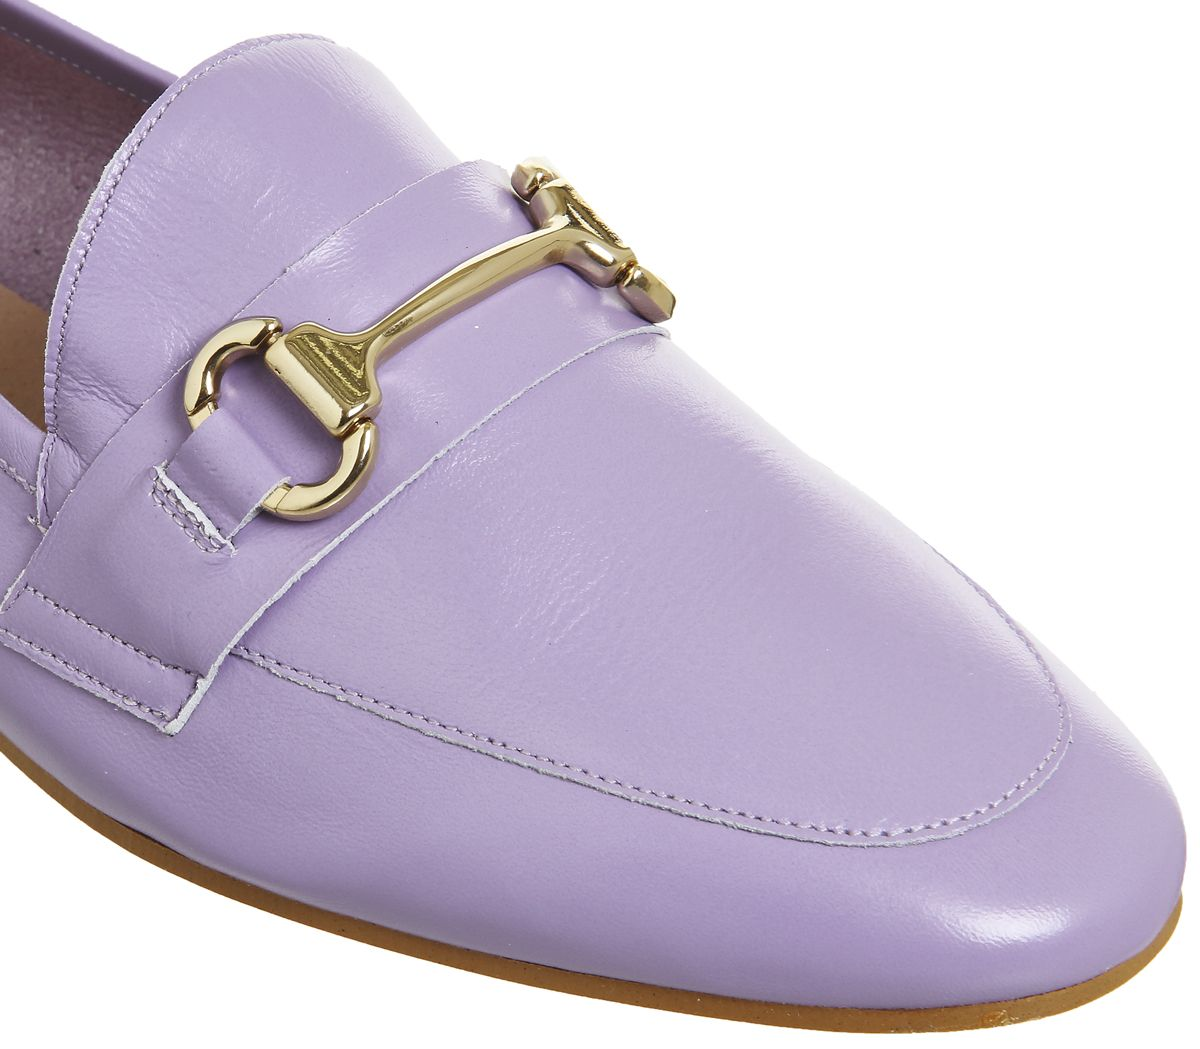 7849844cf68 Office Destiny Trim Loafer Lilac Leather - Flats